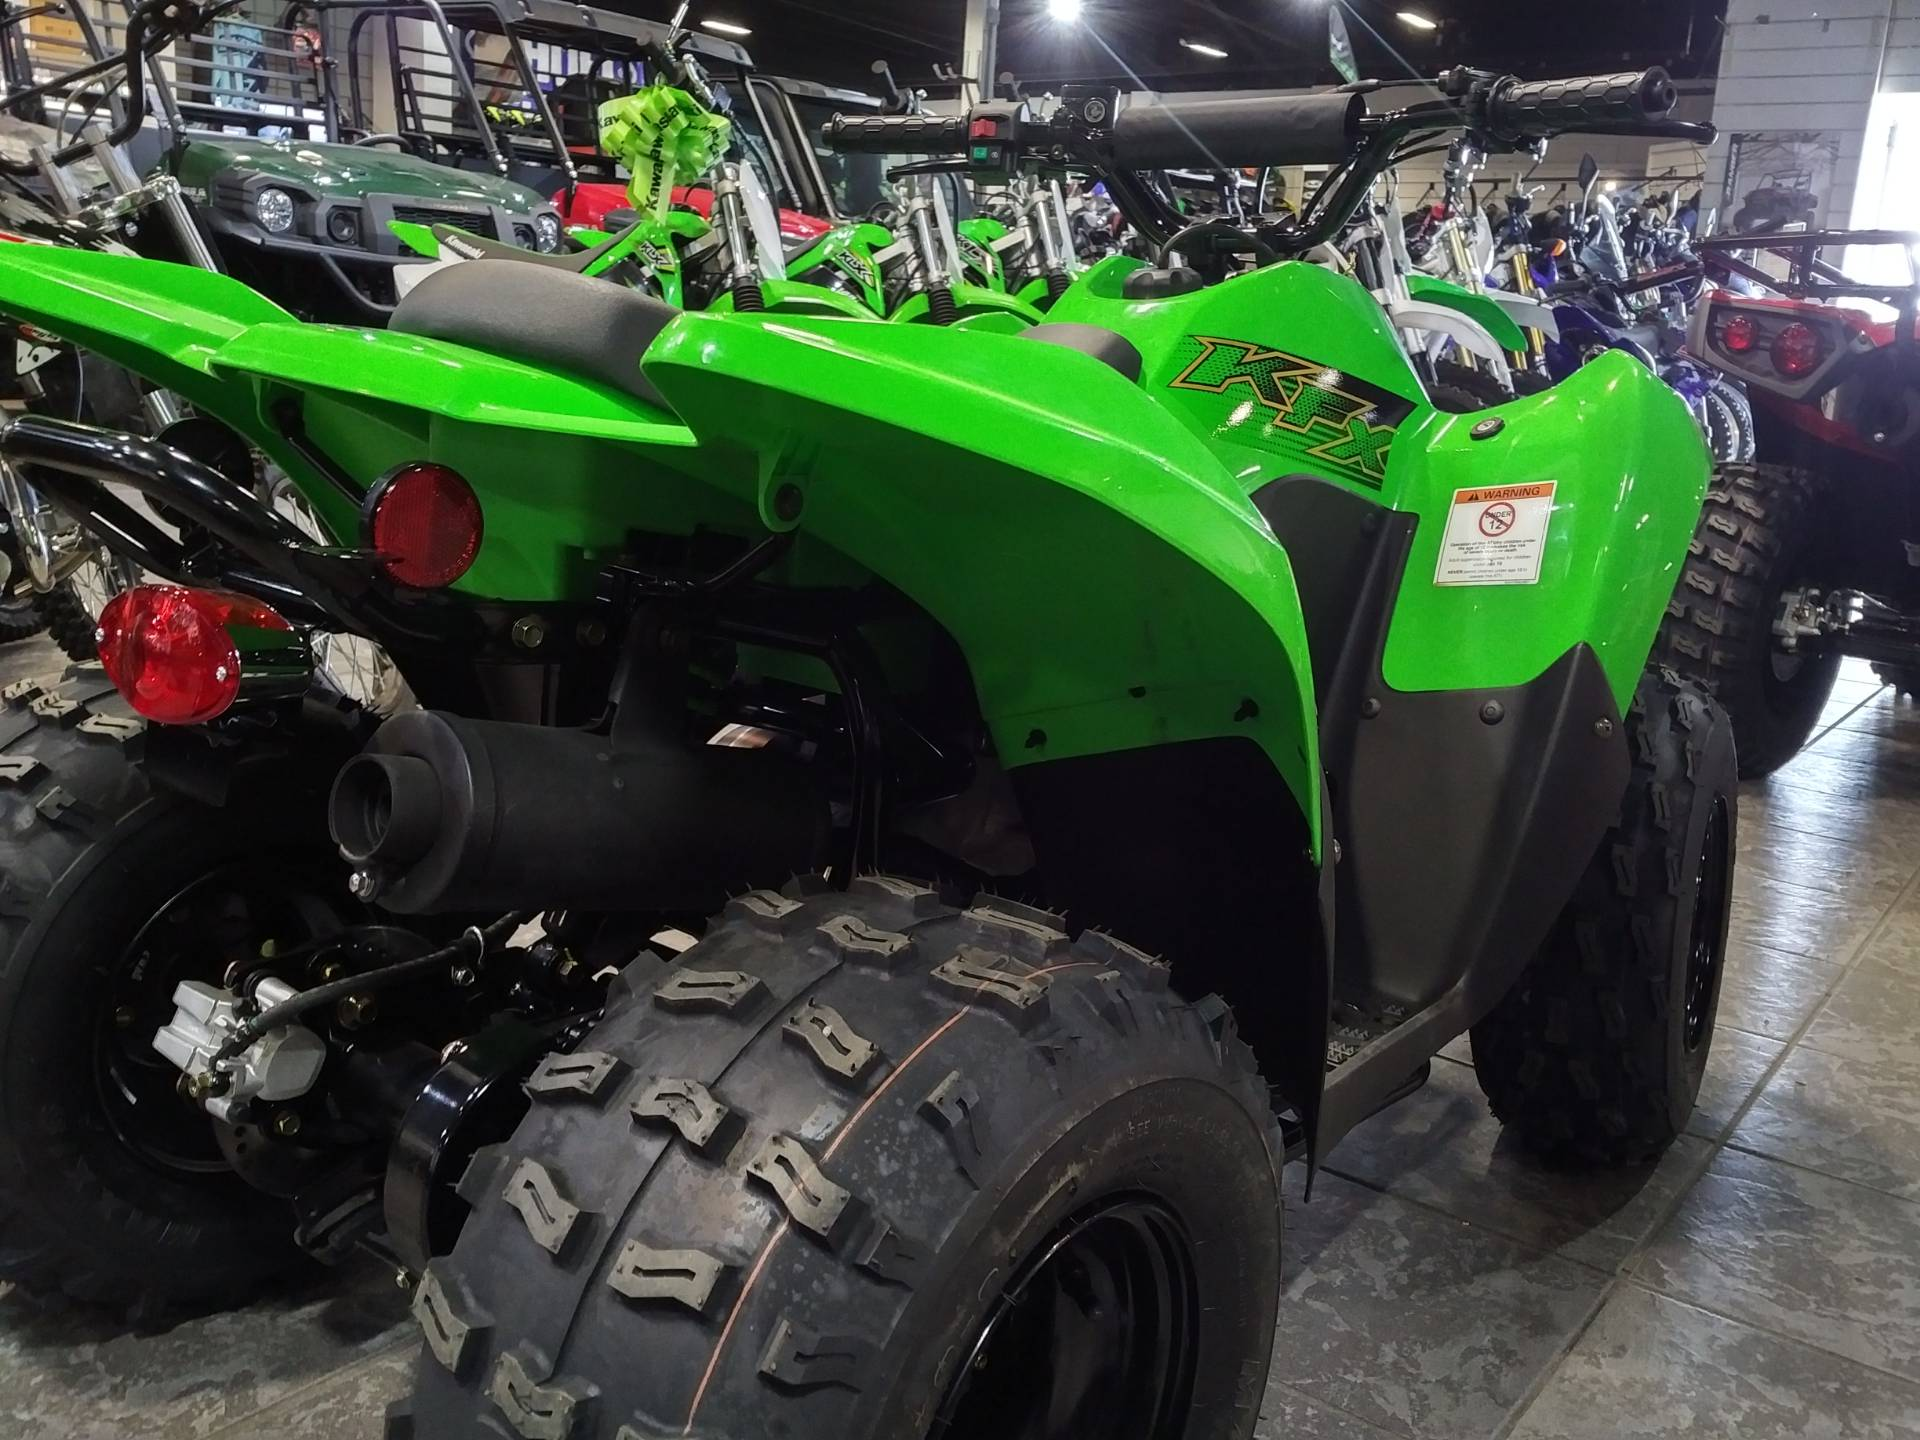 2020 Kawasaki KFX 90 in Salinas, California - Photo 7